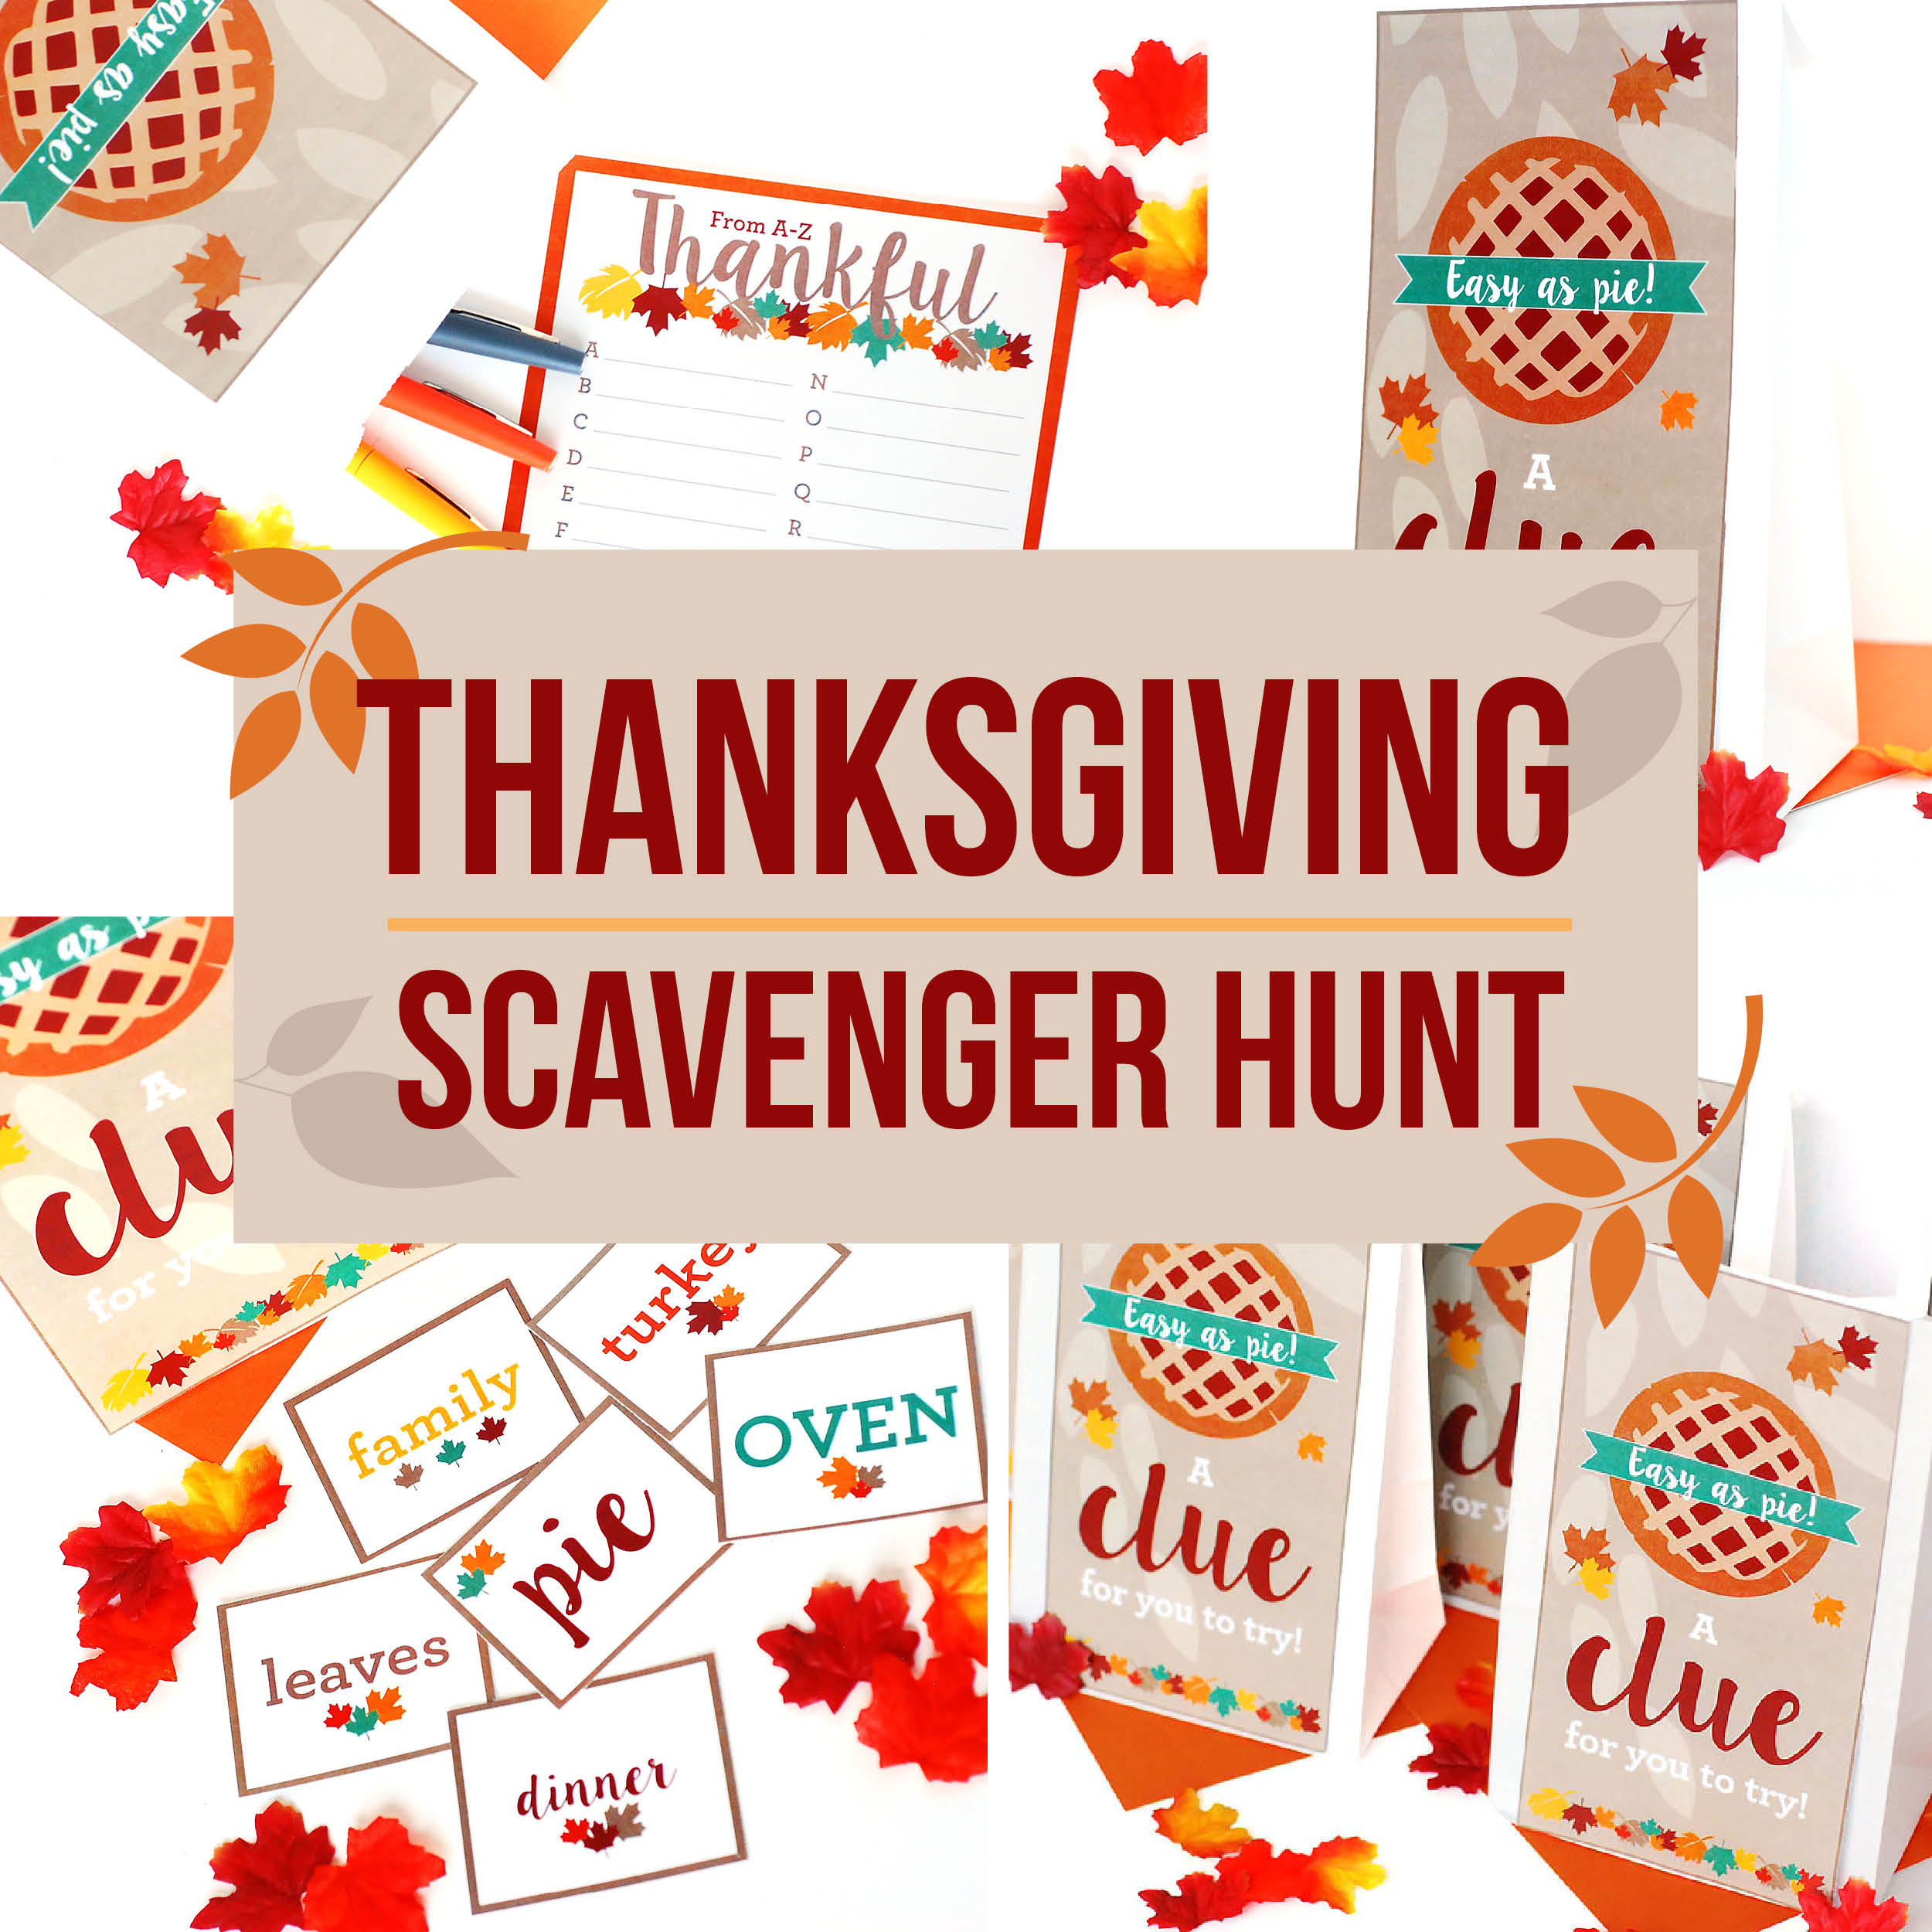 Scavenger Hunt Ideas For Thanksgiving